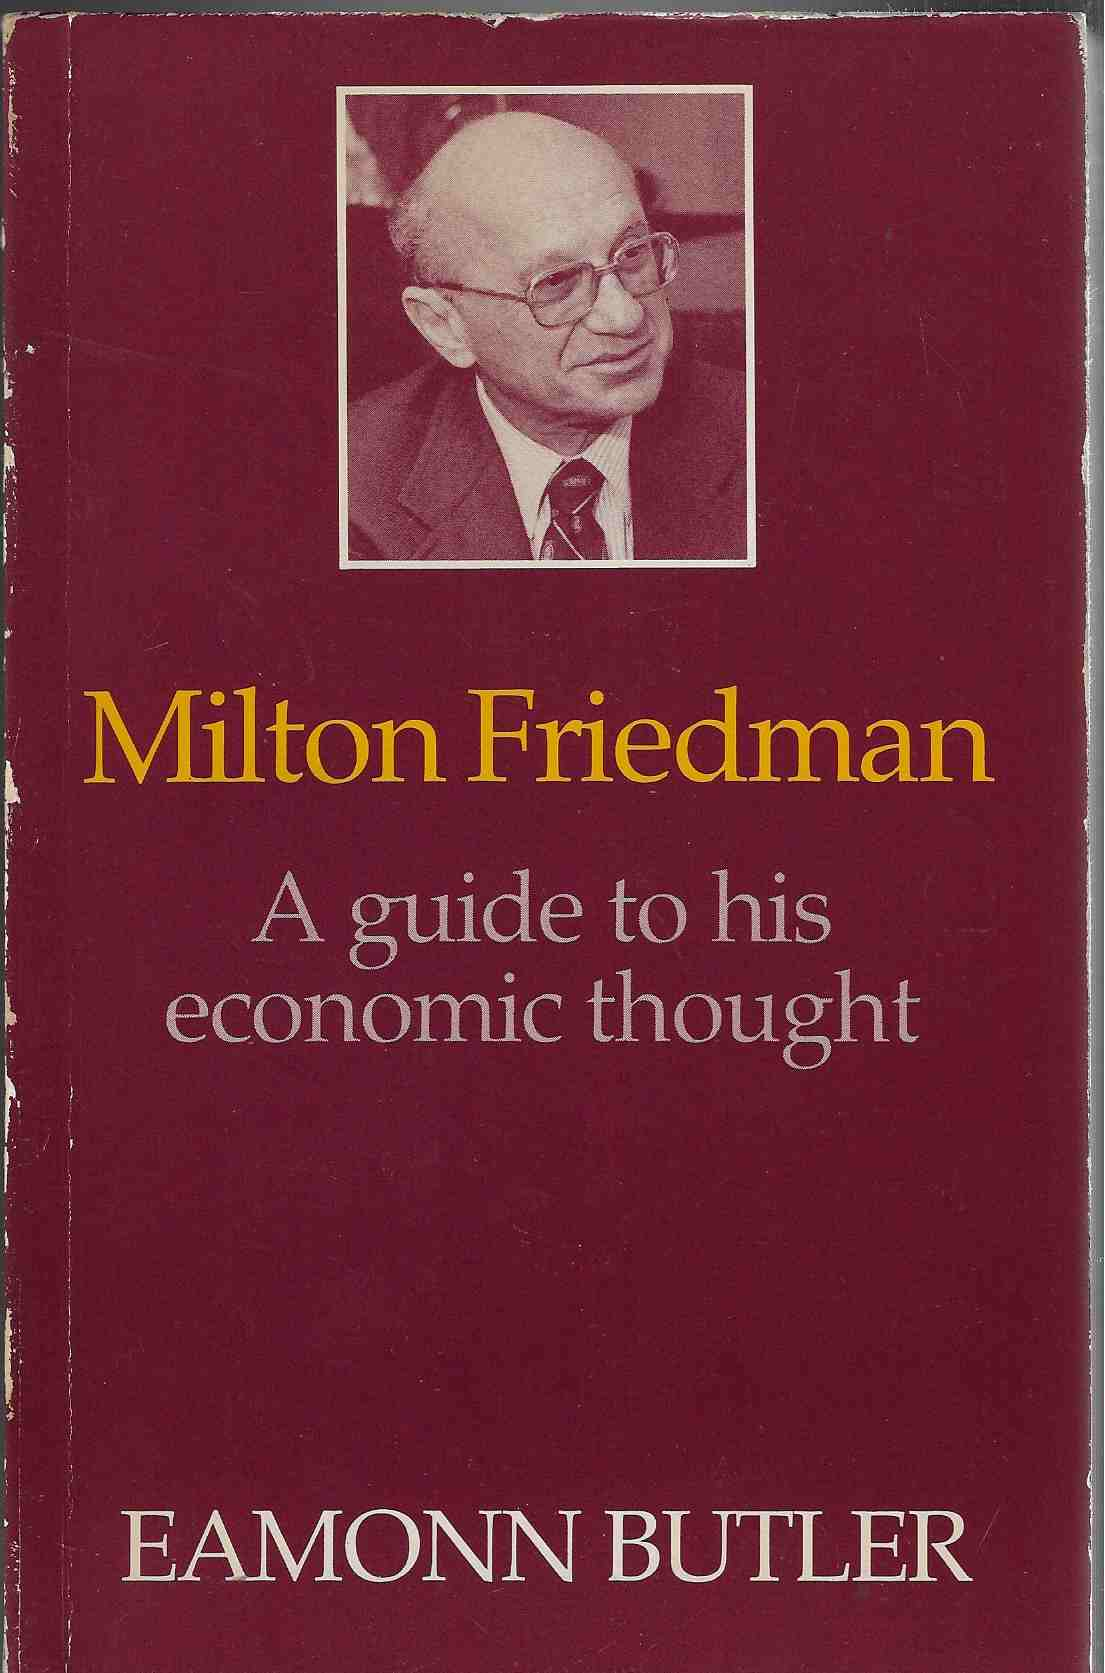 Image for Milton Friedman A Guide to his Economic Thought